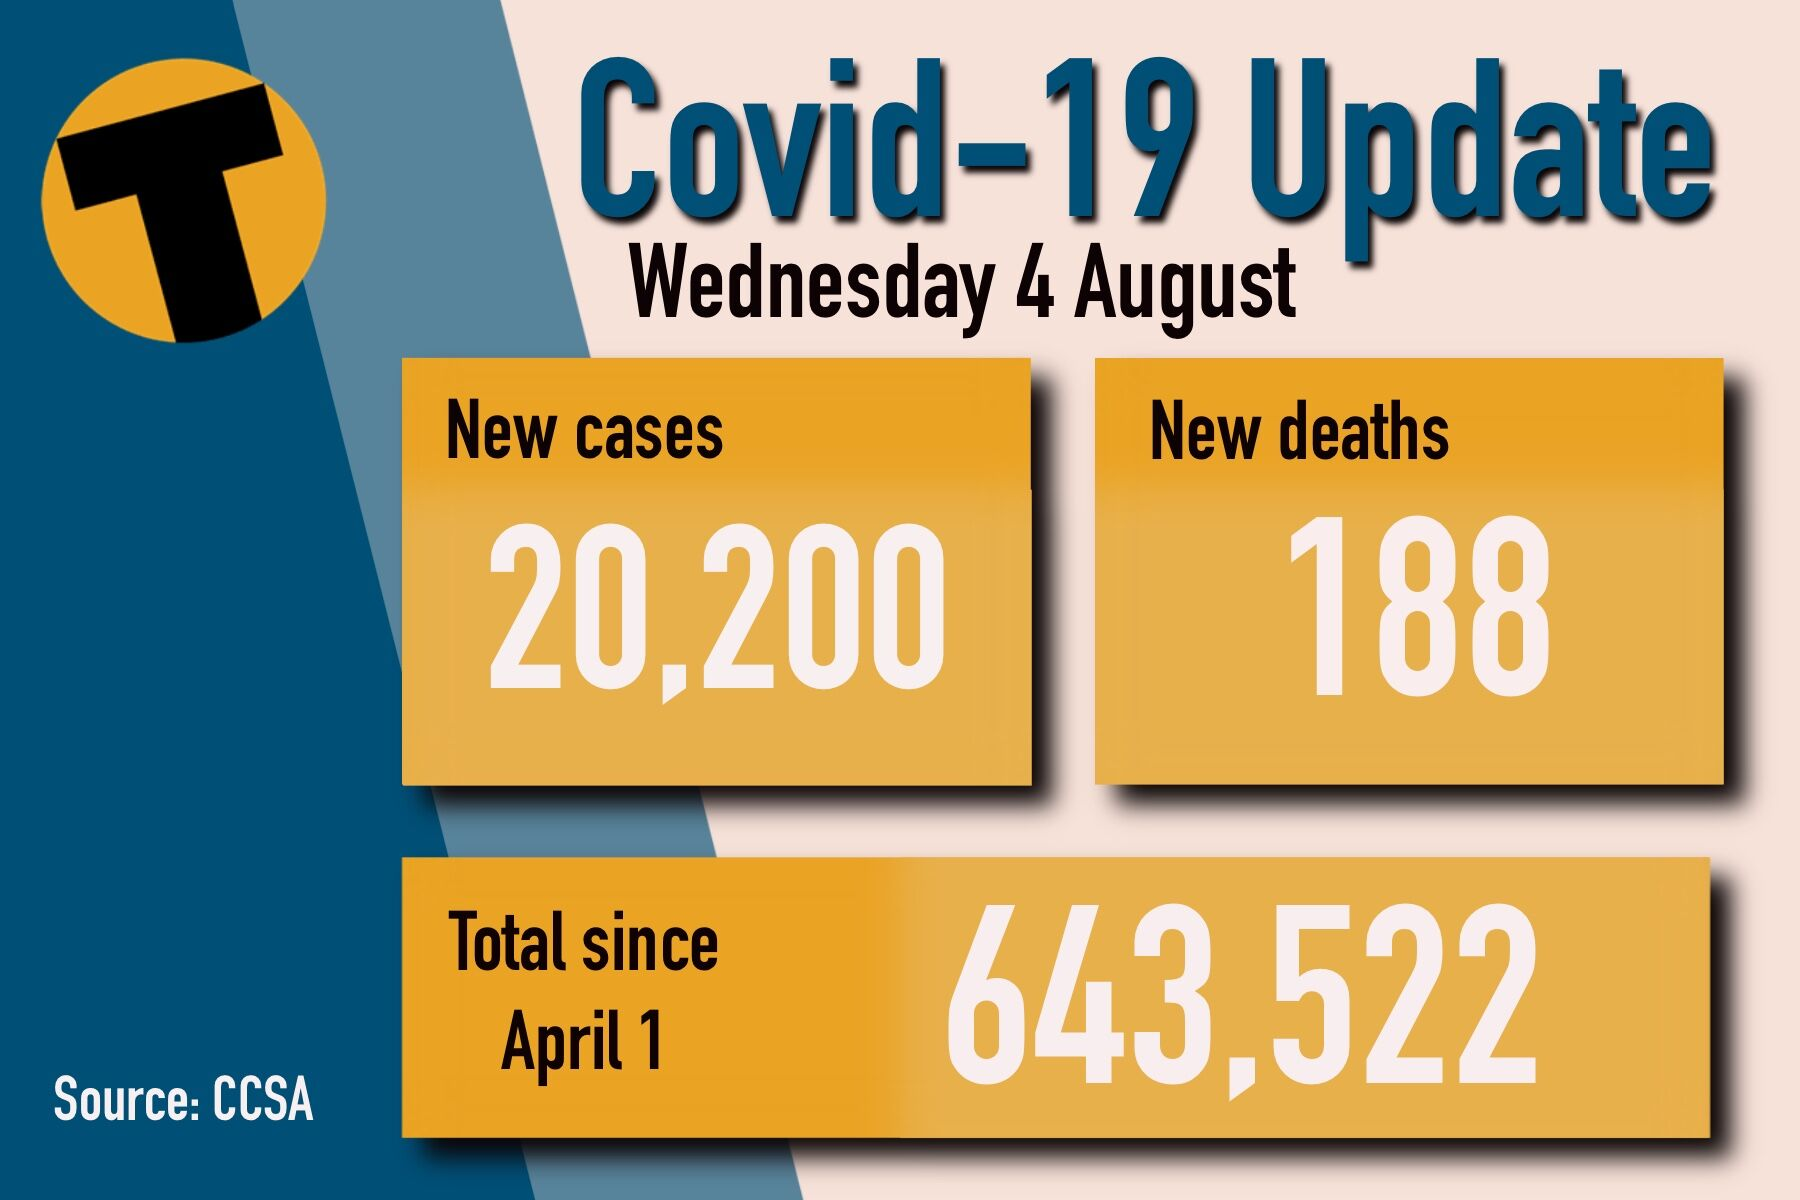 Wednesday Covid Update: Record high of 20,200 new cases and 188 deaths   News by Thaiger